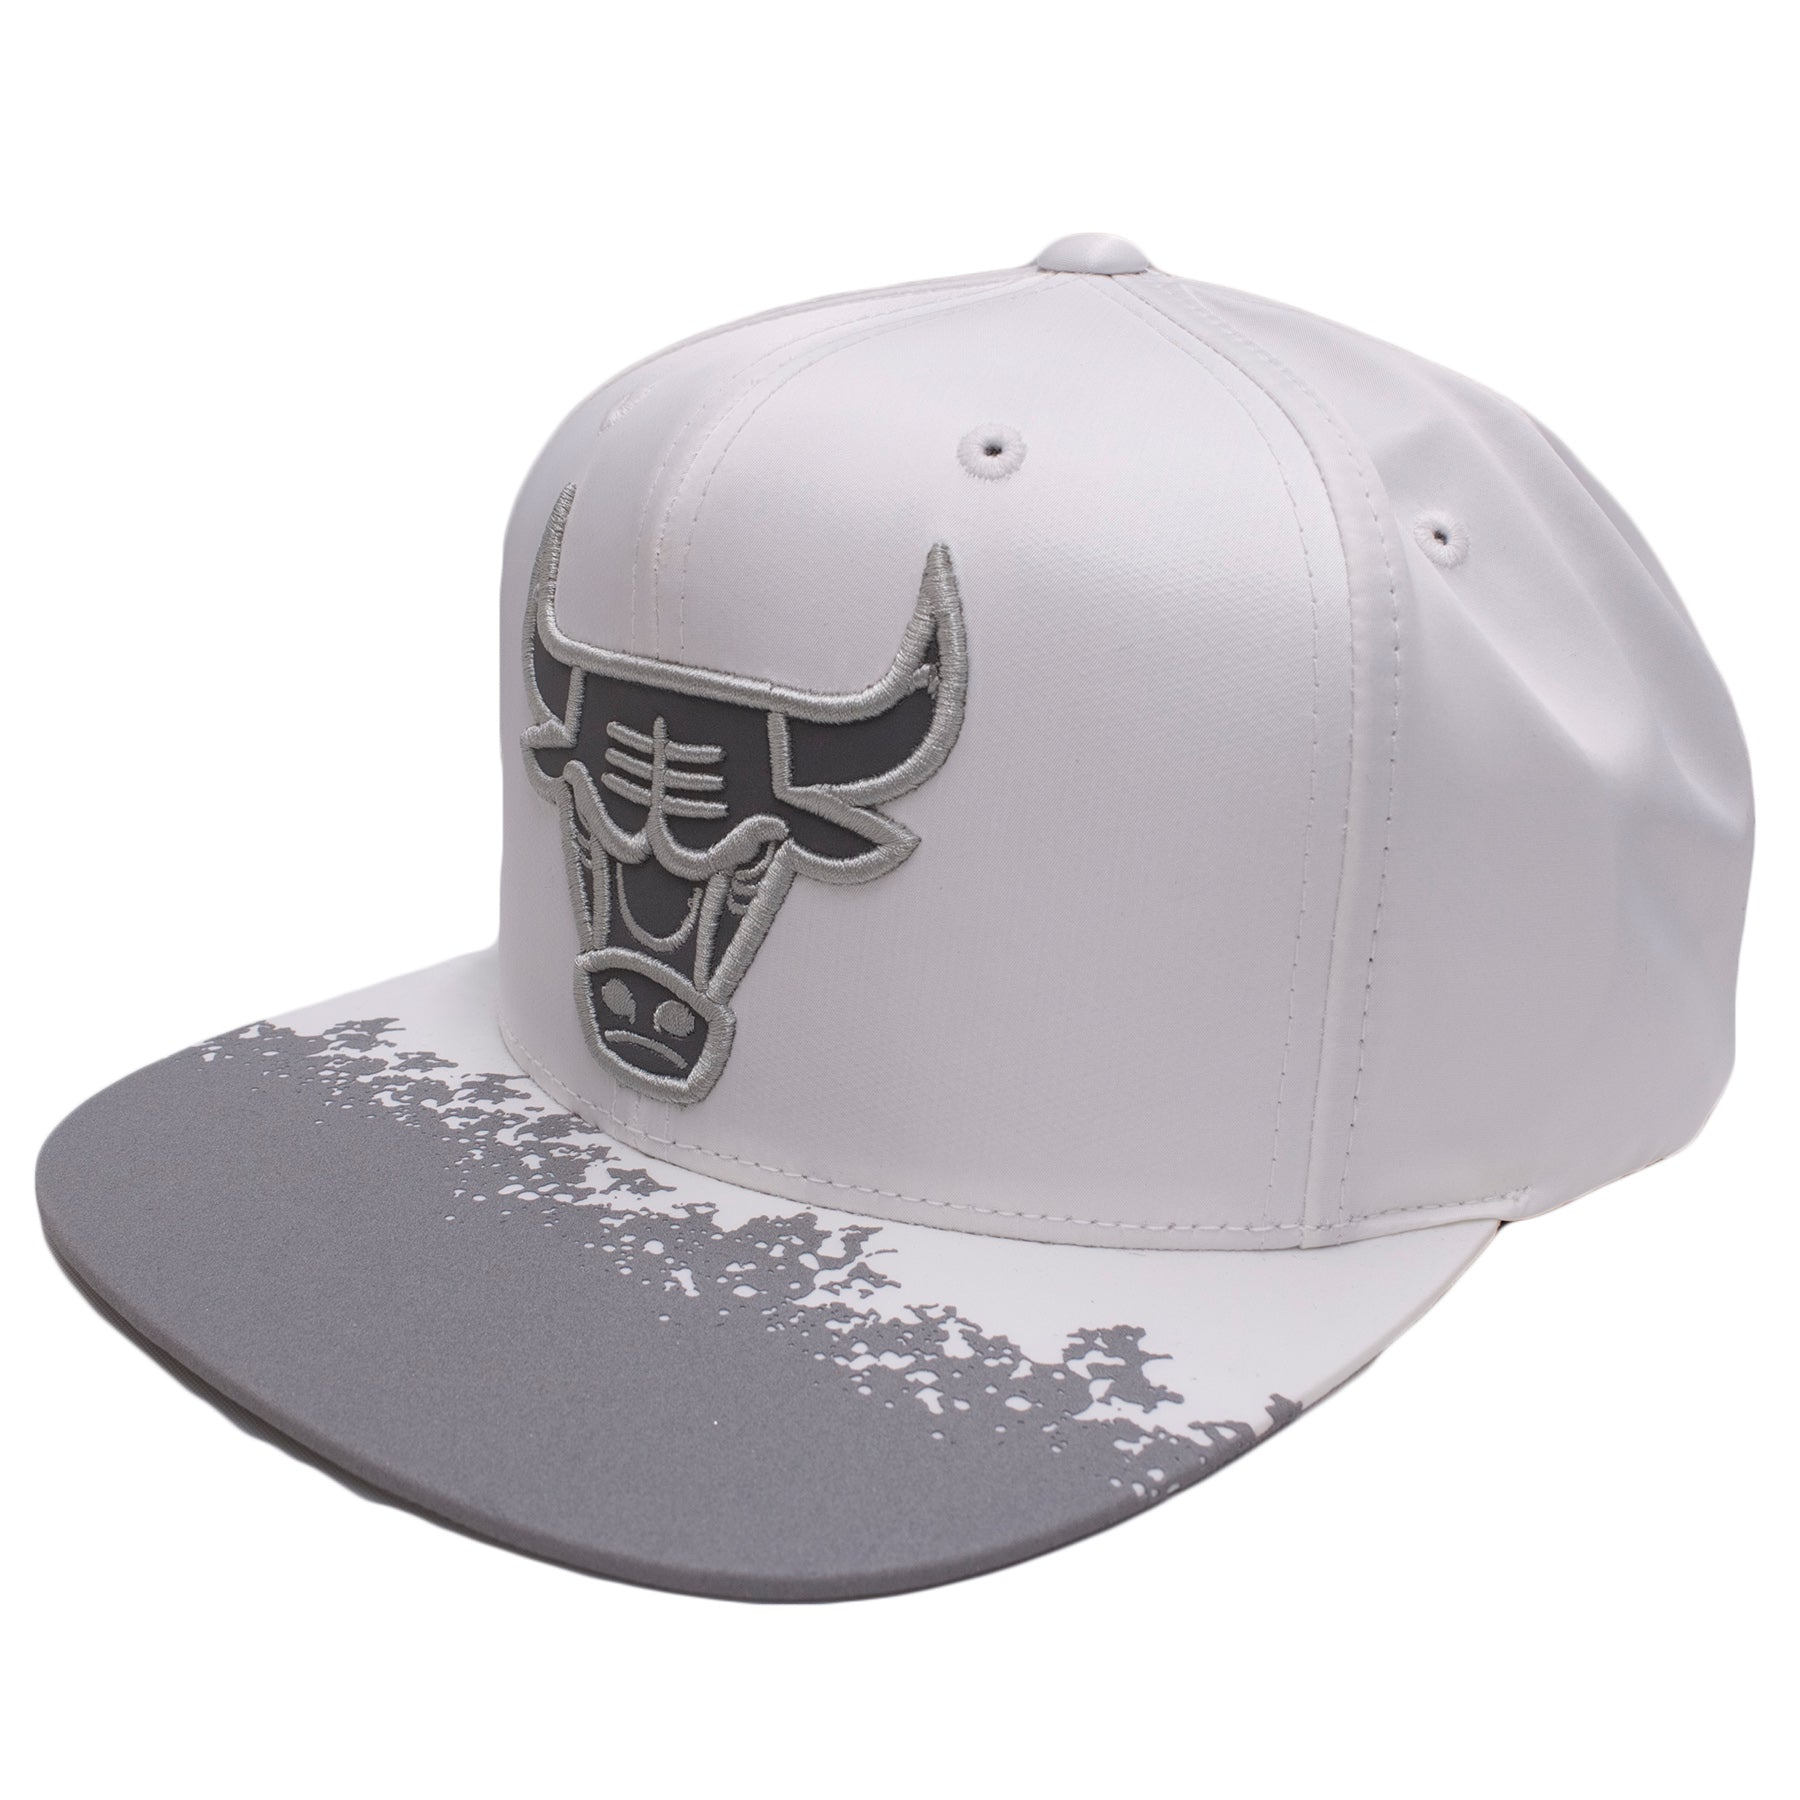 size 40 cb244 9af3a ... the chicago bulls white lava reflective snapback hat has a high crown  and a flat brim ...